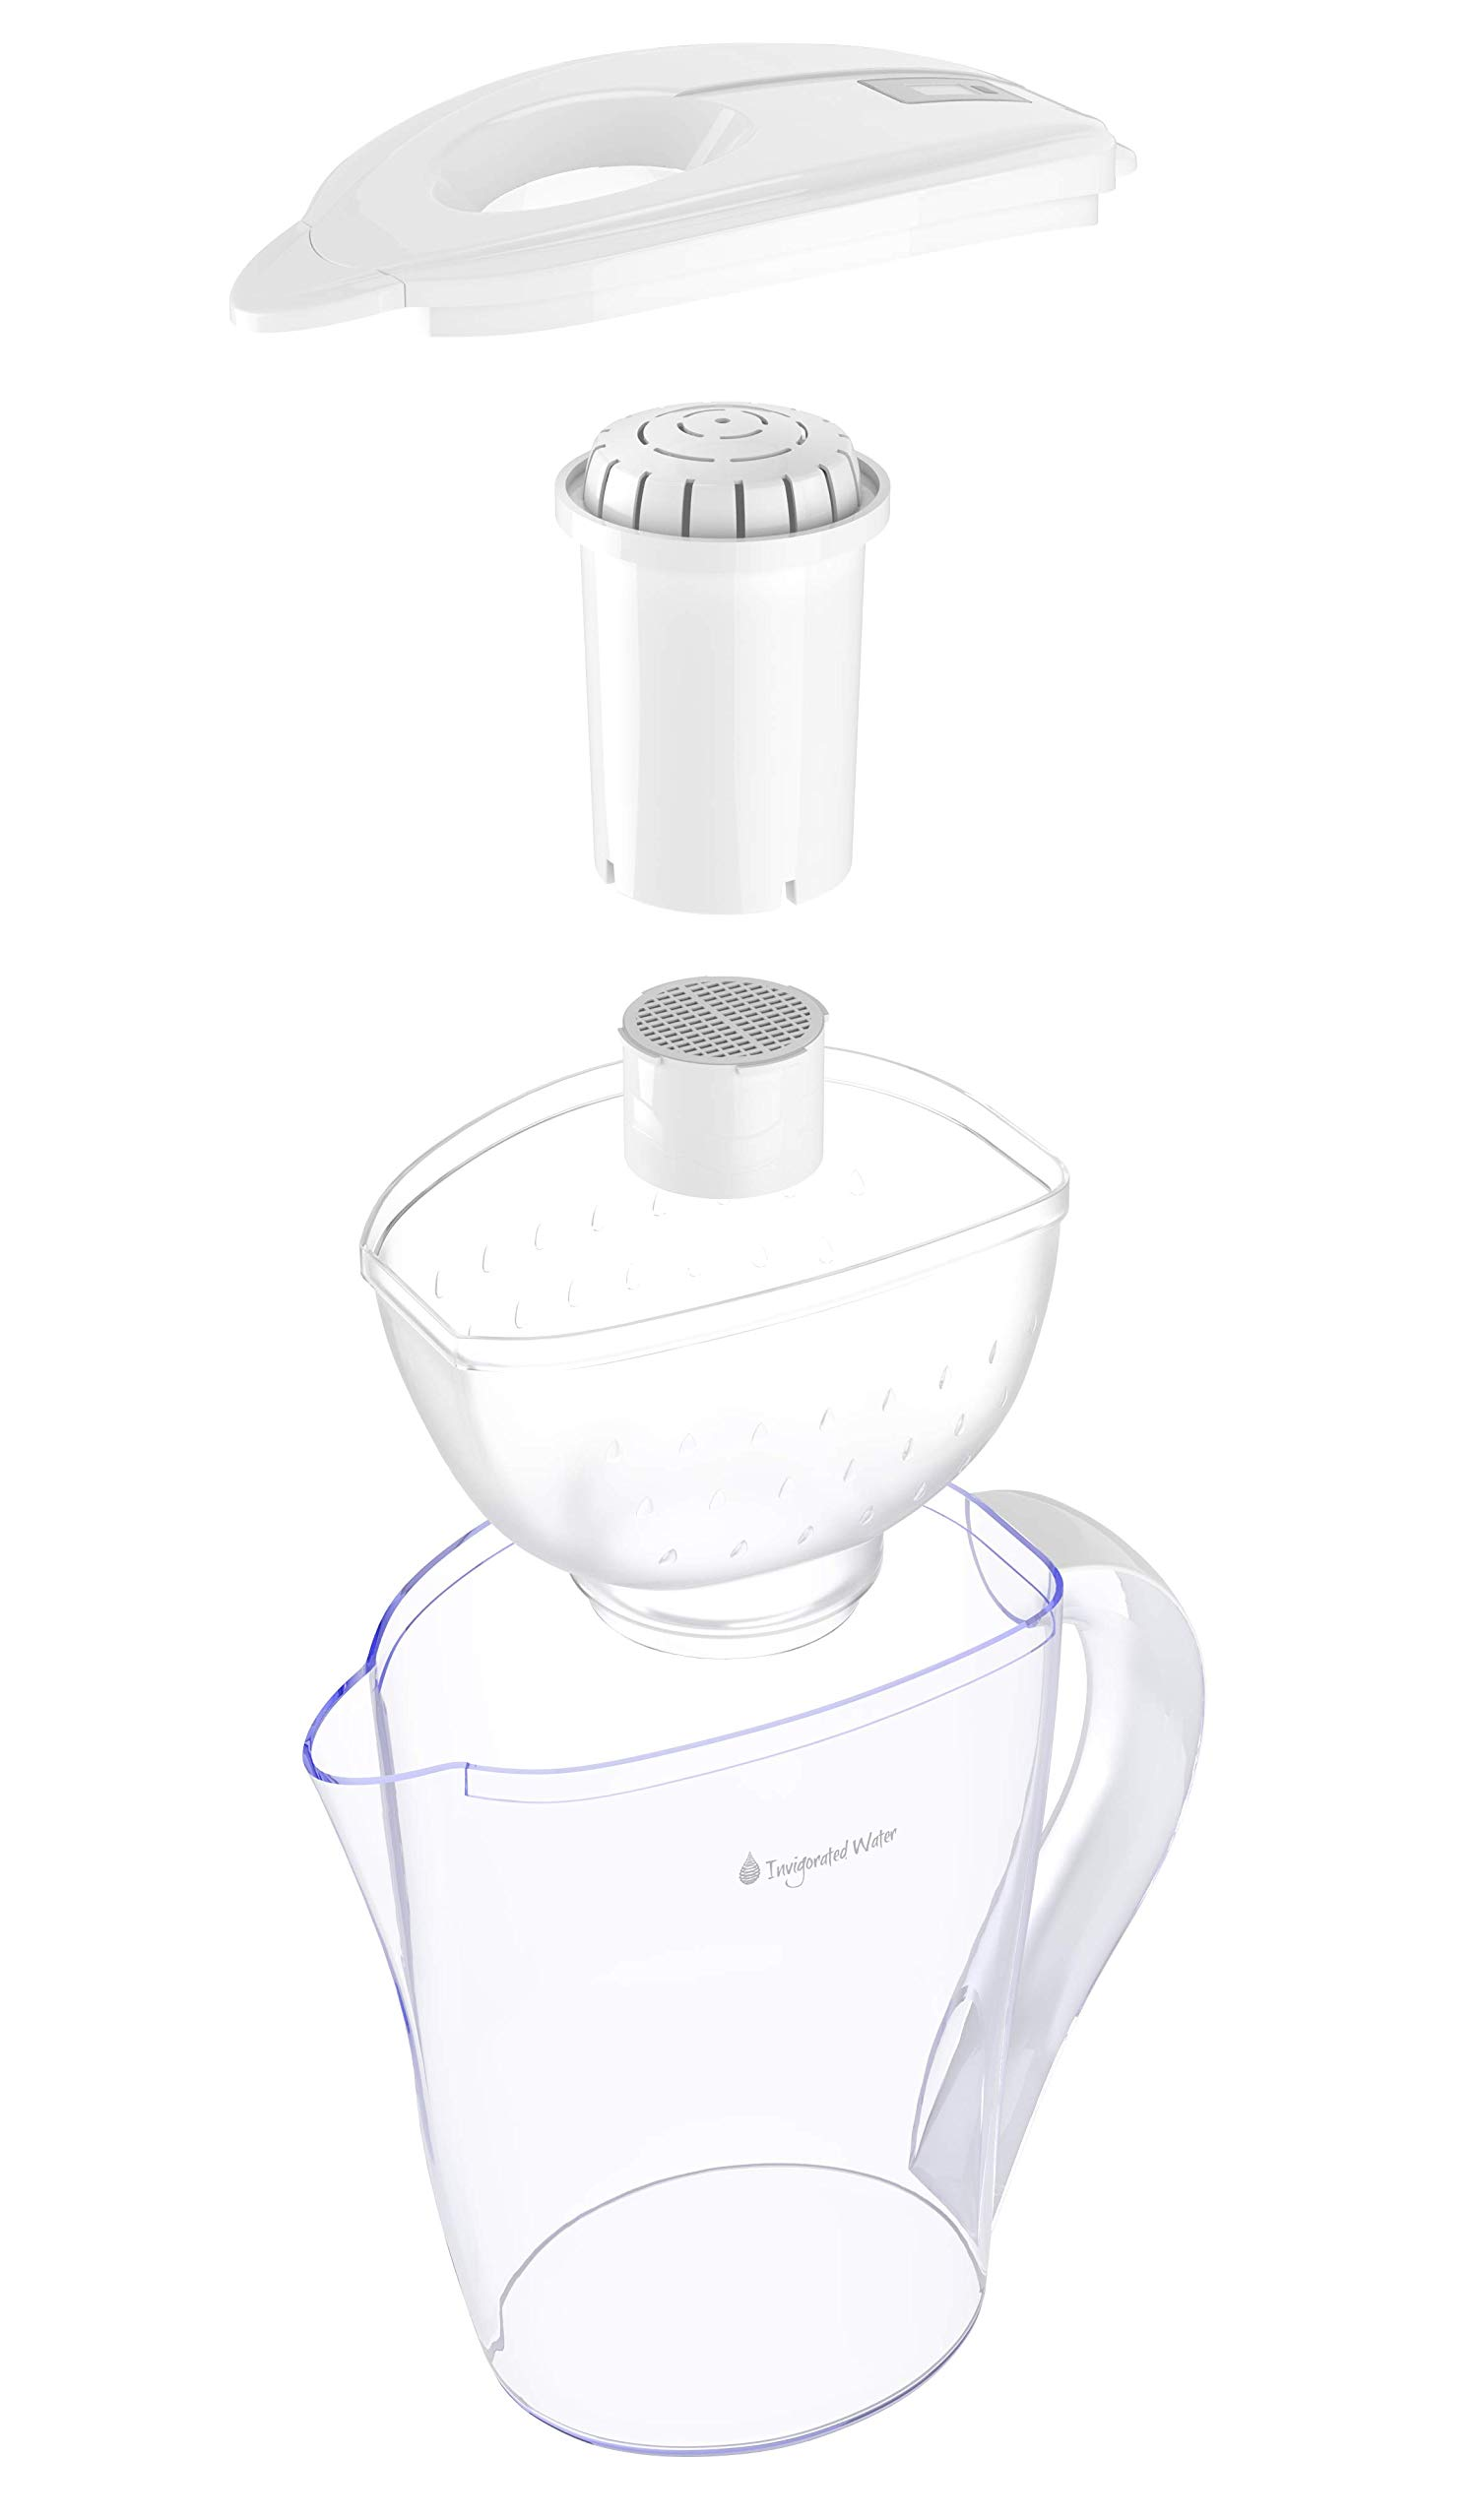 pH Restore Alkaline Water Pitcher with Long-Life Filter - Alkaline Water Filter Purifier - Water Filtration System - High pH Ionized Alkaline Water Machine, 118oz, 3.5L (White) by Invigorated Water (Image #3)